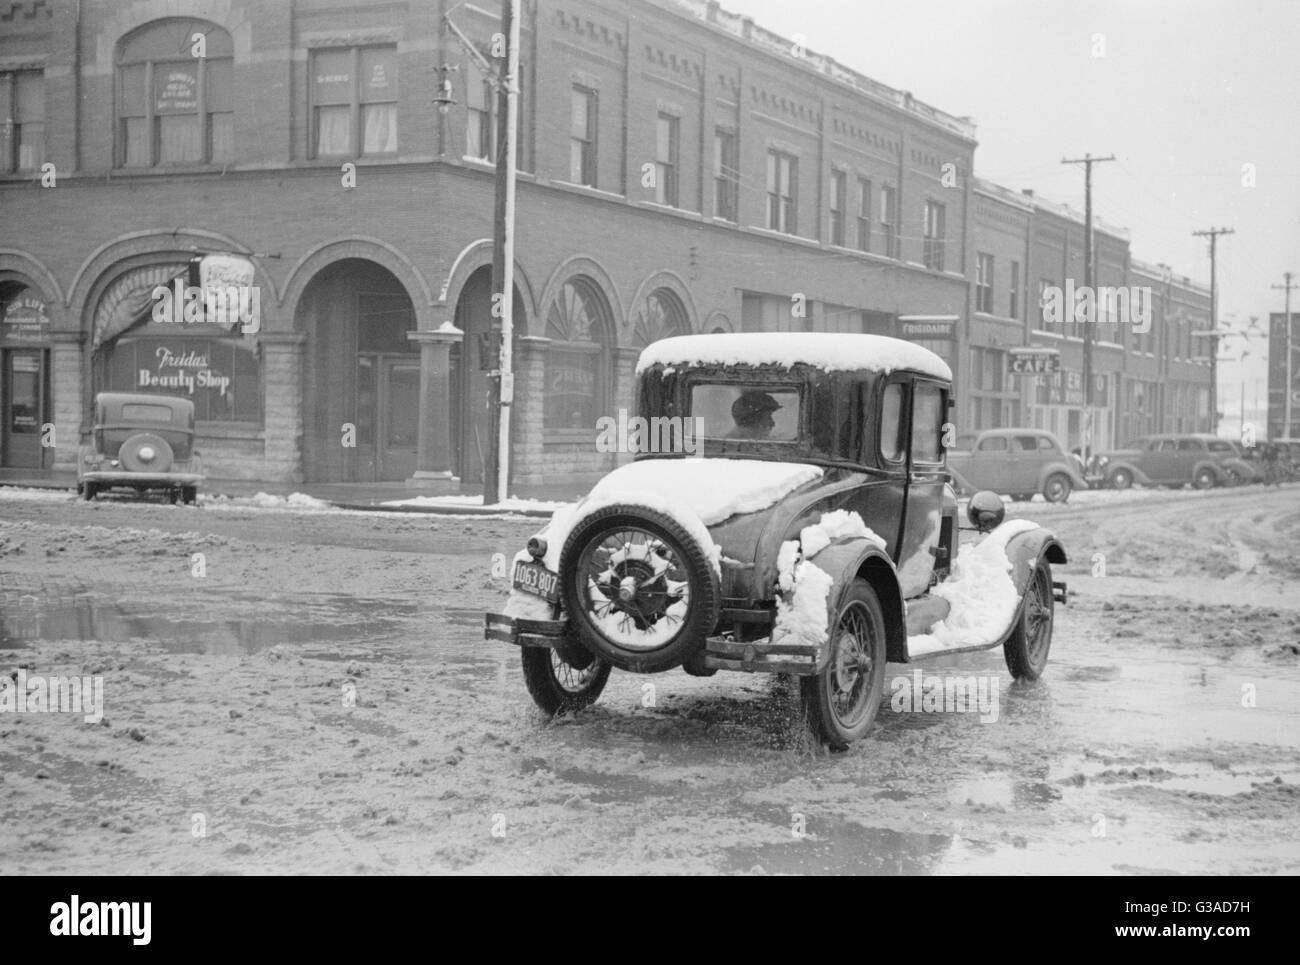 1930s car in the snow     Date: late 1930s - Stock Image